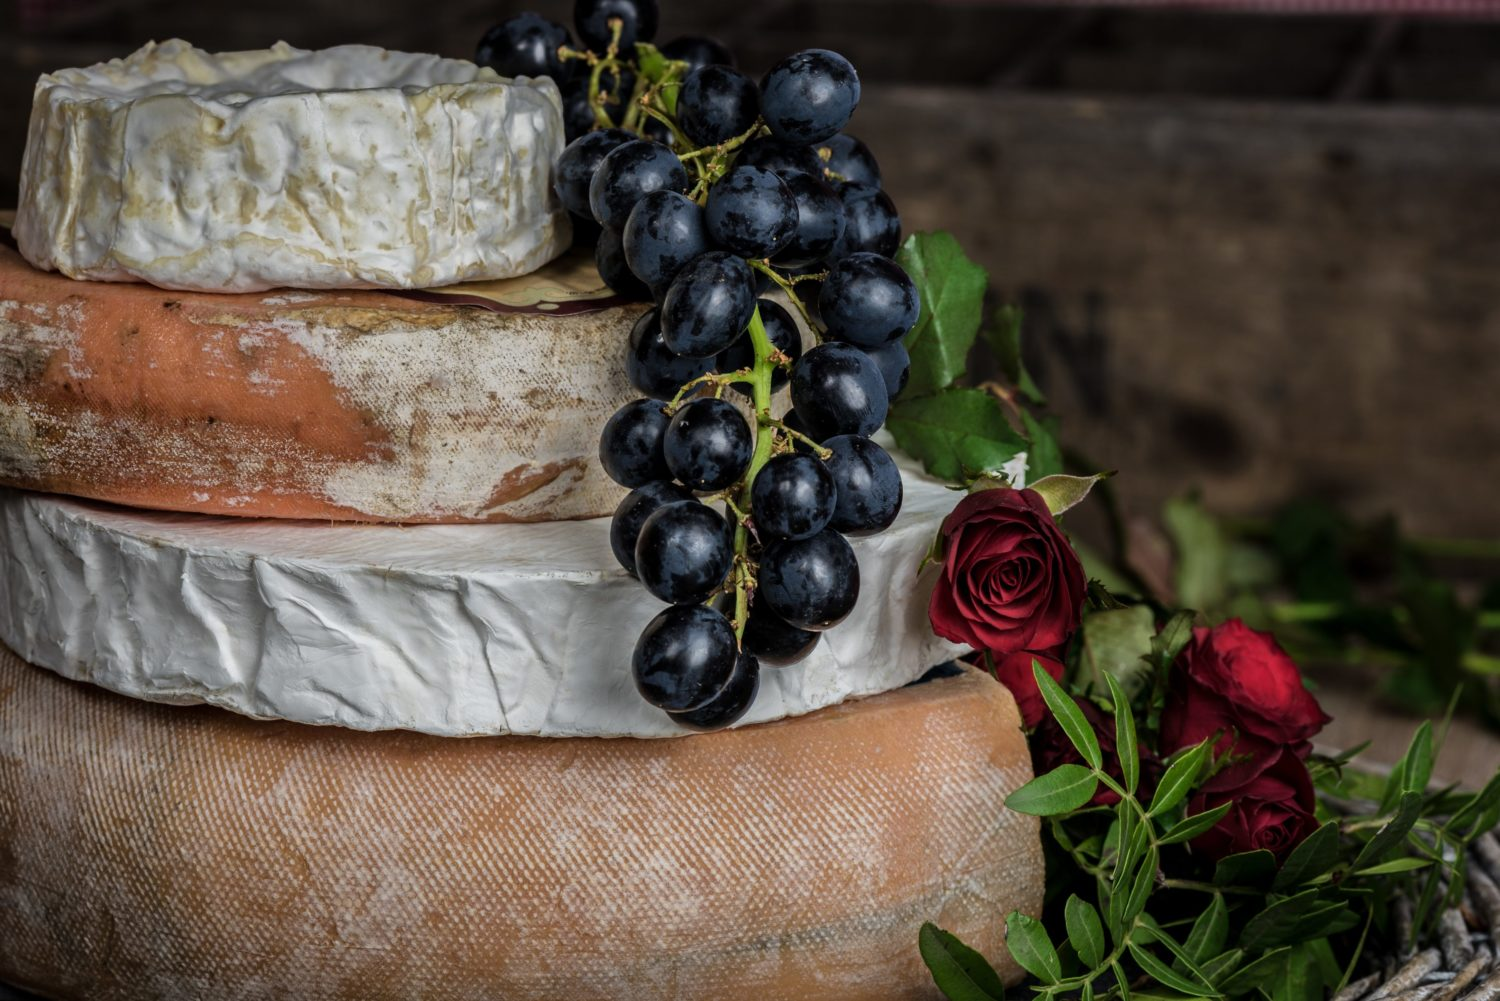 A stack of cheese with black grapes and a rose